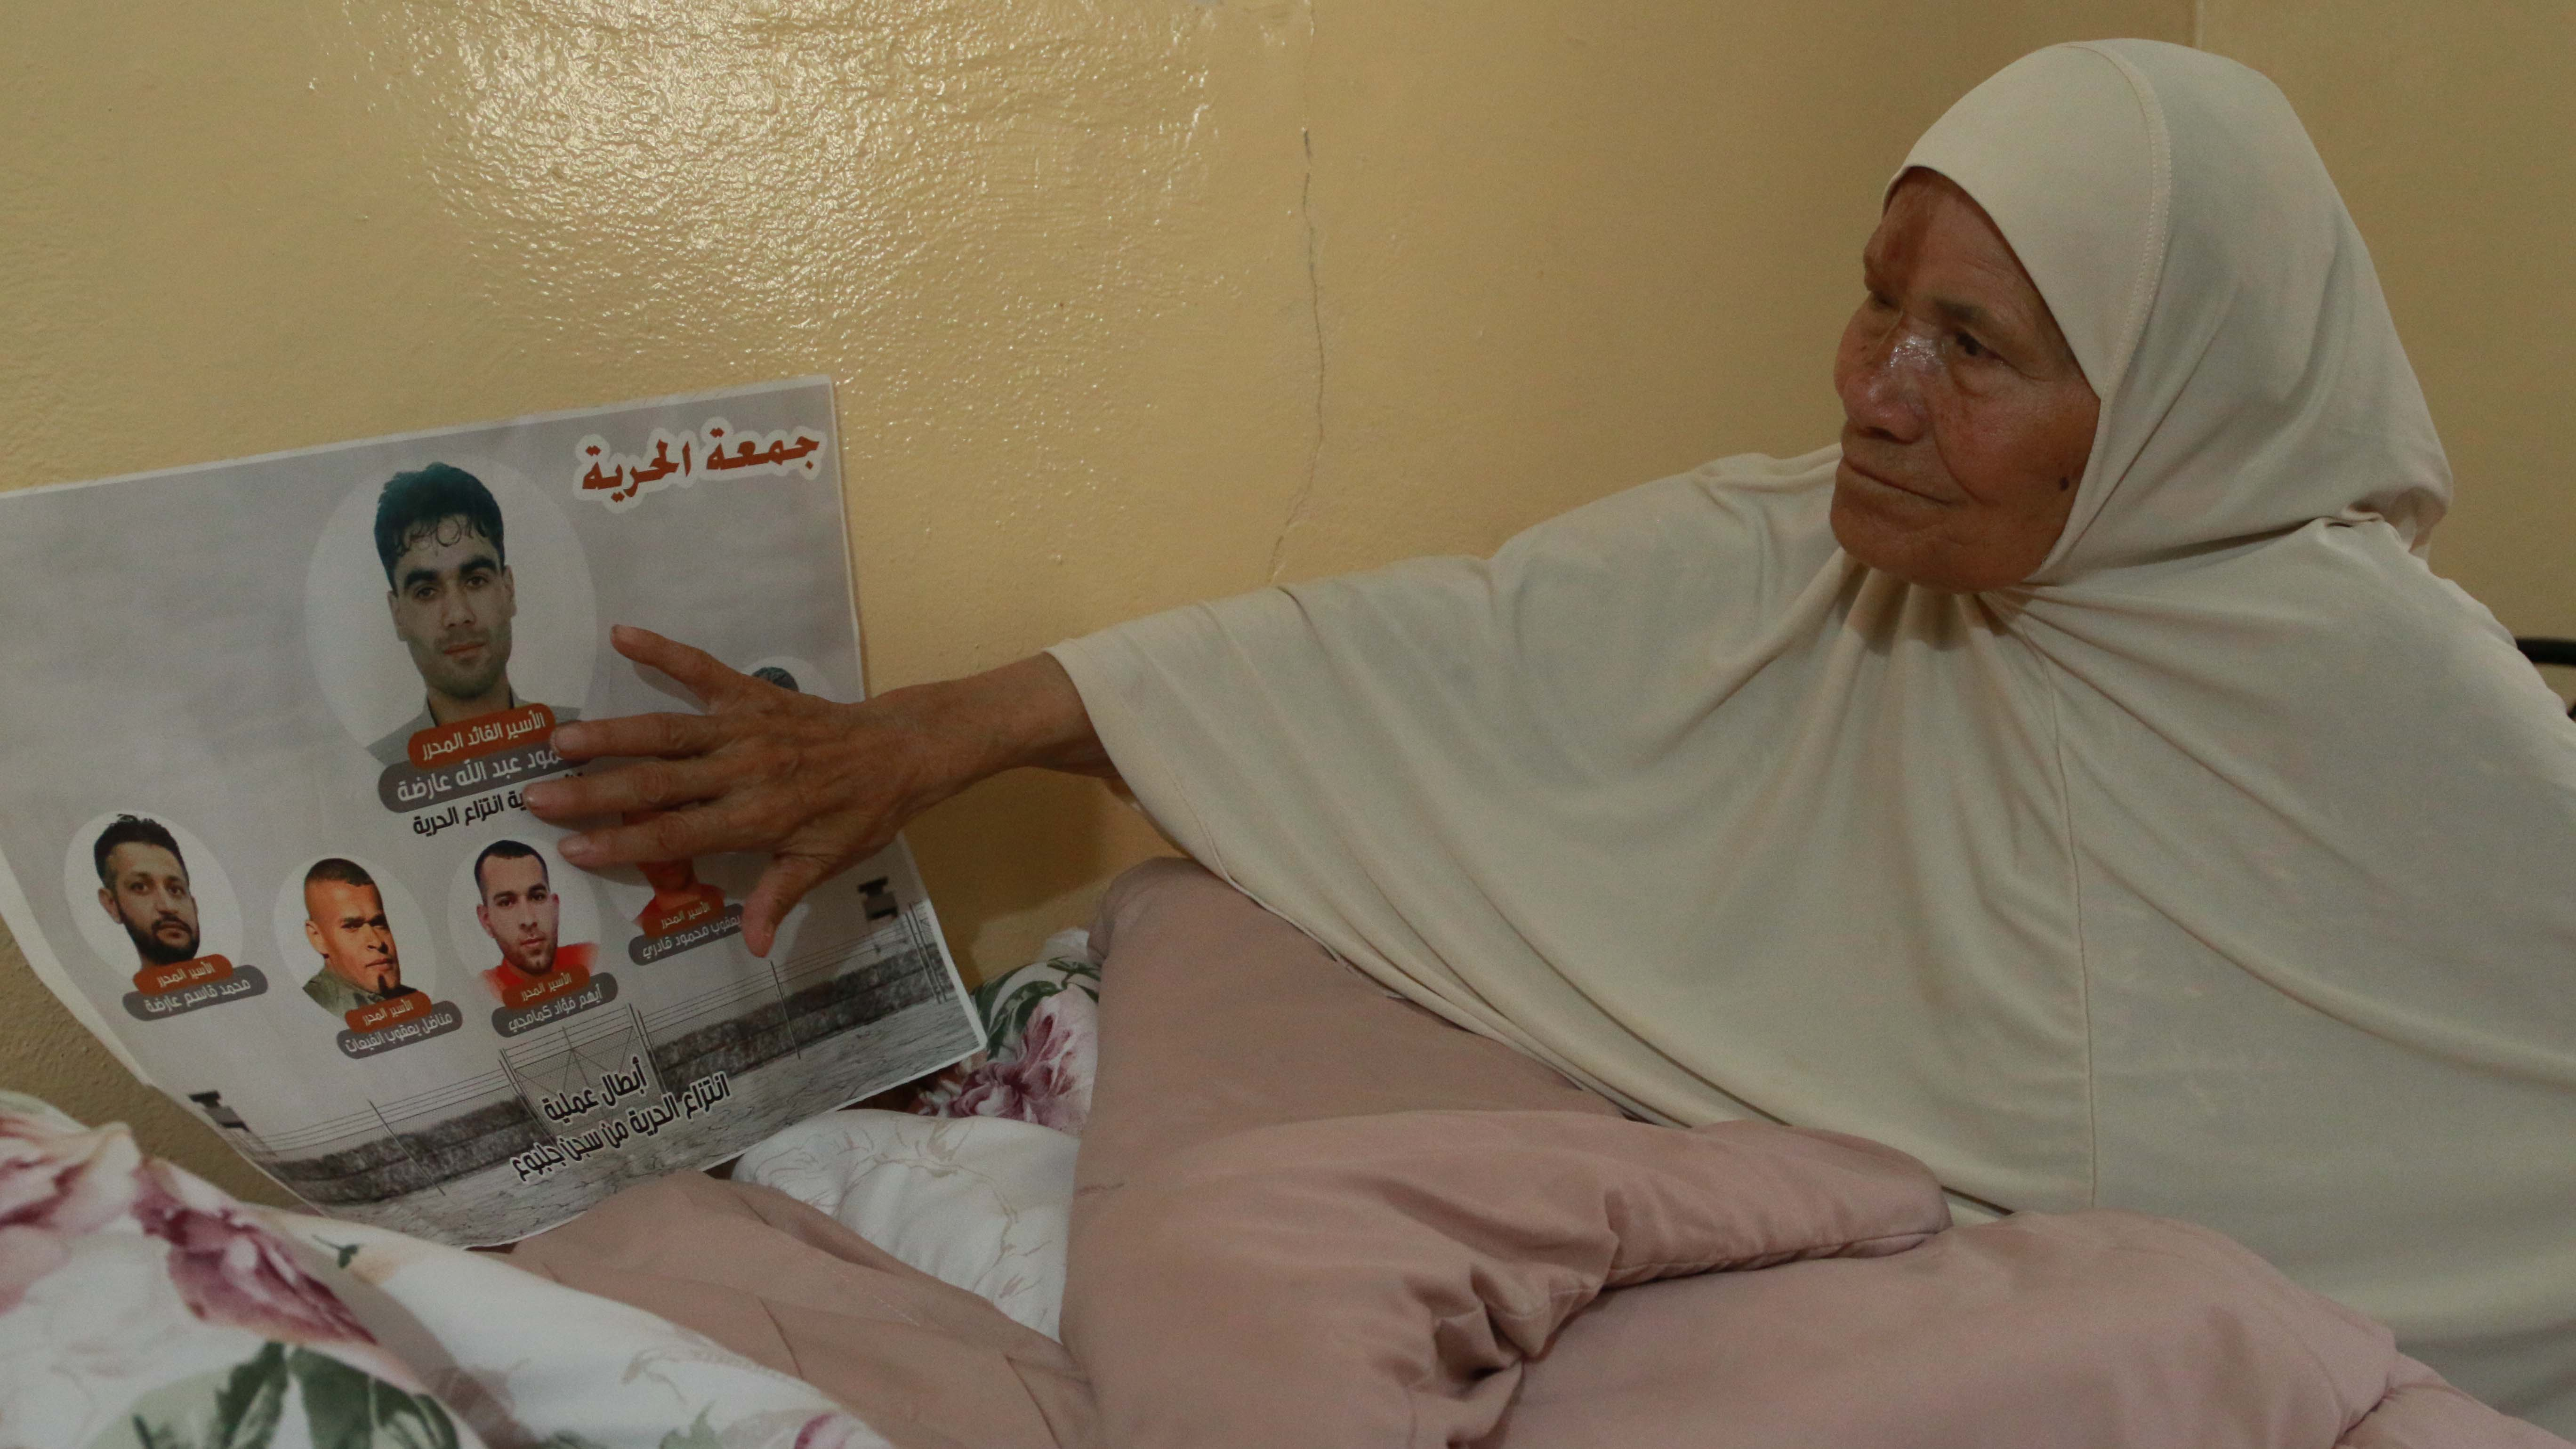 Fathia has not seen her son for more than 7 years as it became difficult for her to go on prison visits.